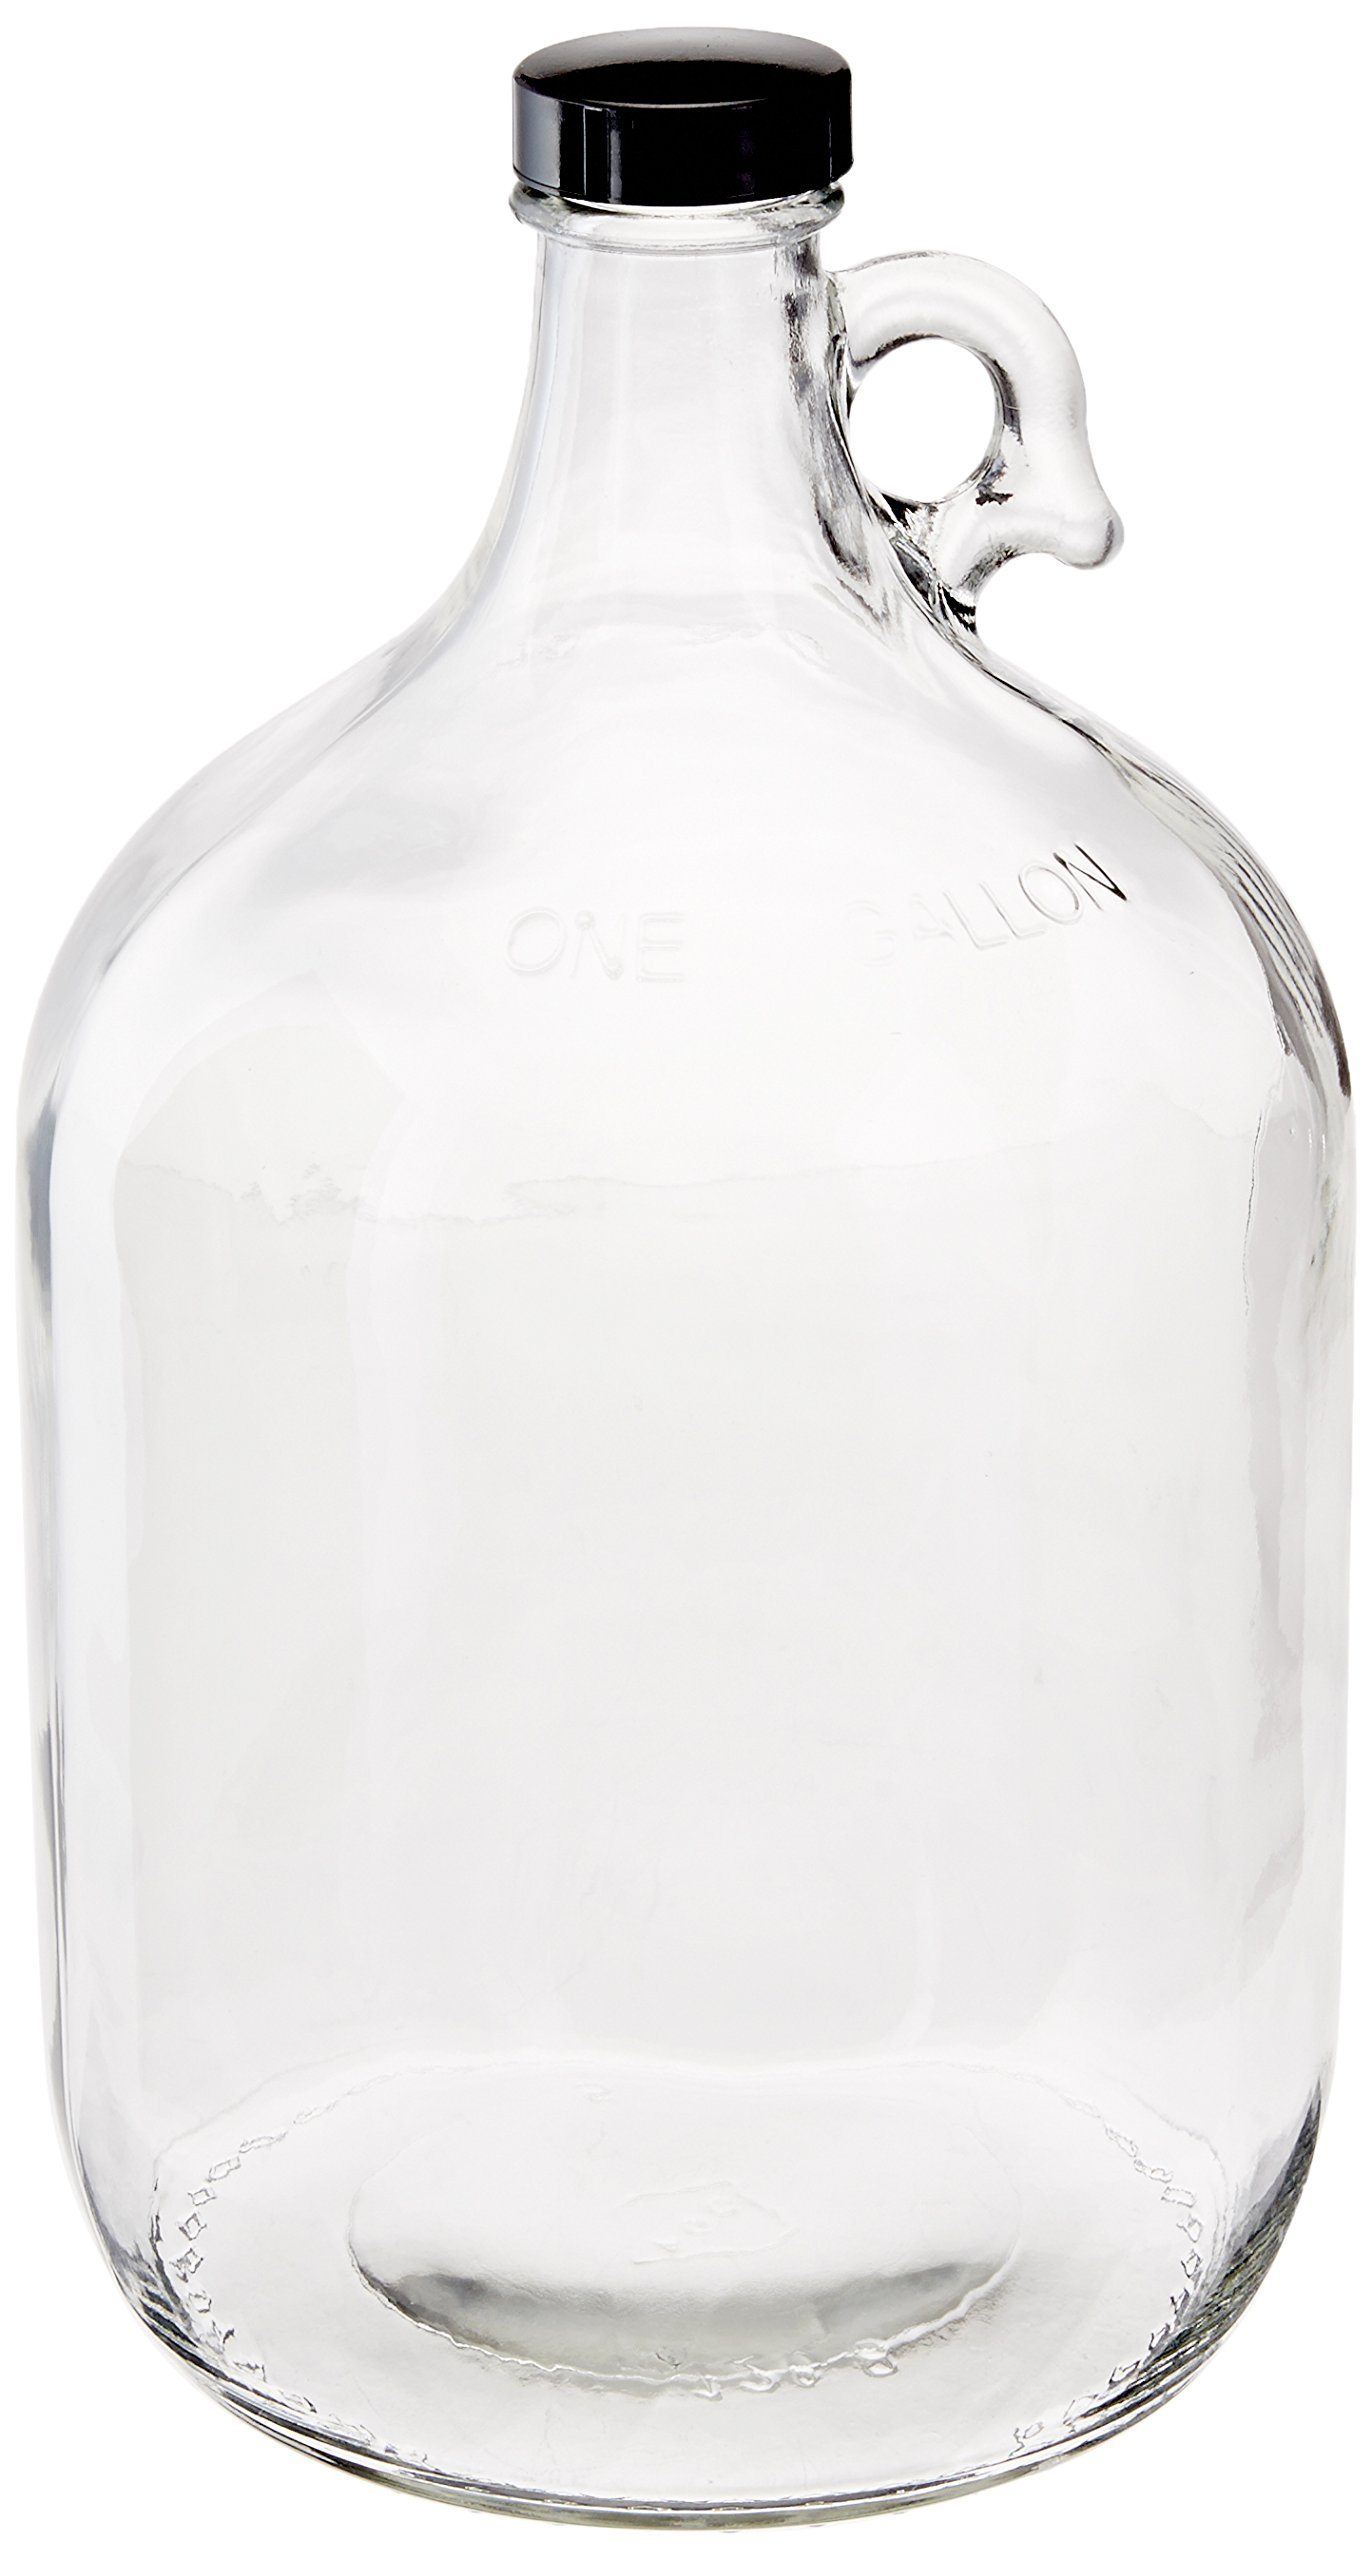 Home Brew Ohio Glass Water Bottle Includes 38 mm Polyseal Cap, 1 gallon Capacity